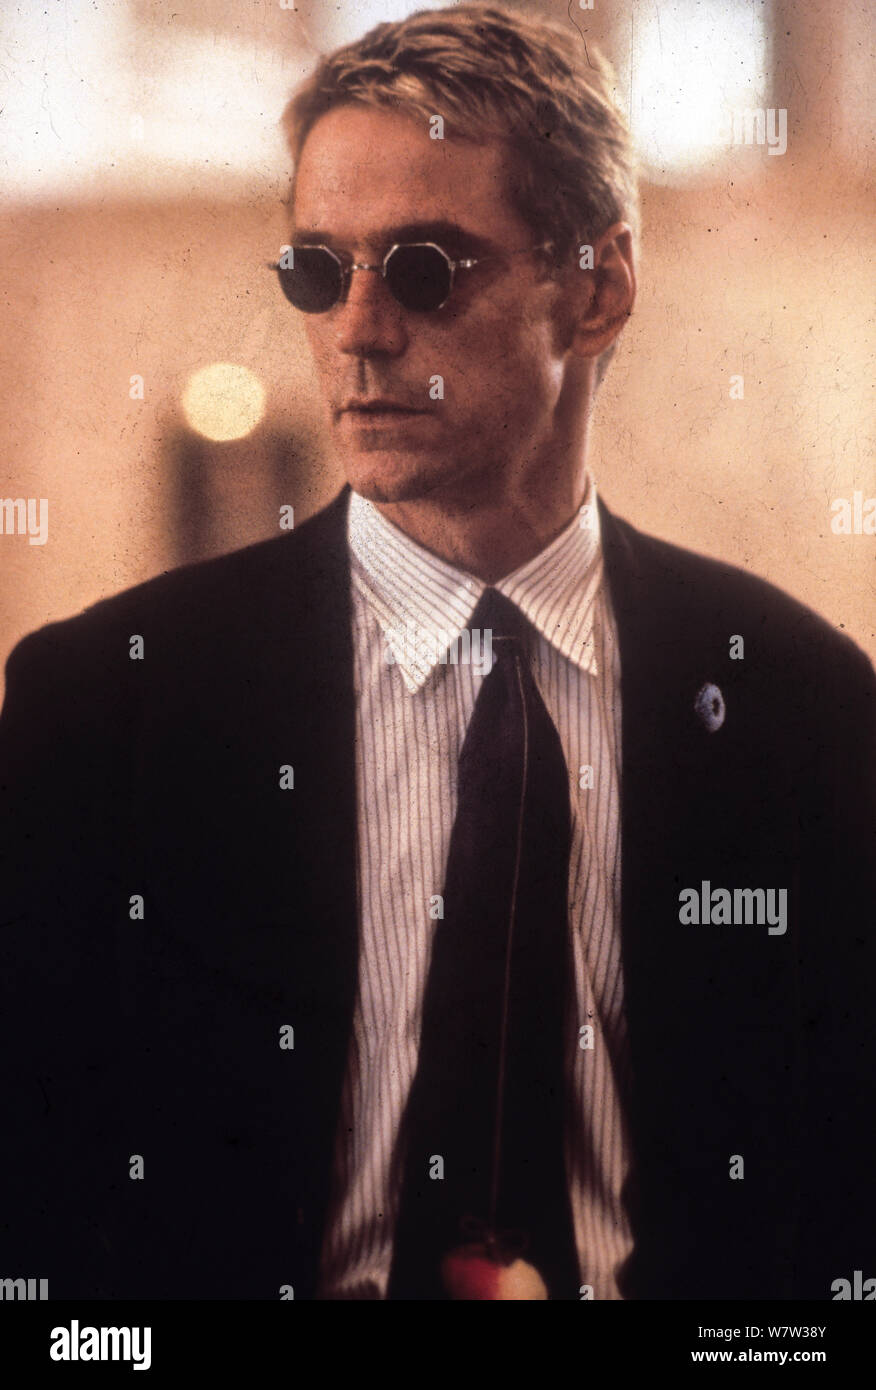 Jeremy Irons Die Hard With A Vengeance 1995 Stock Photo Alamy